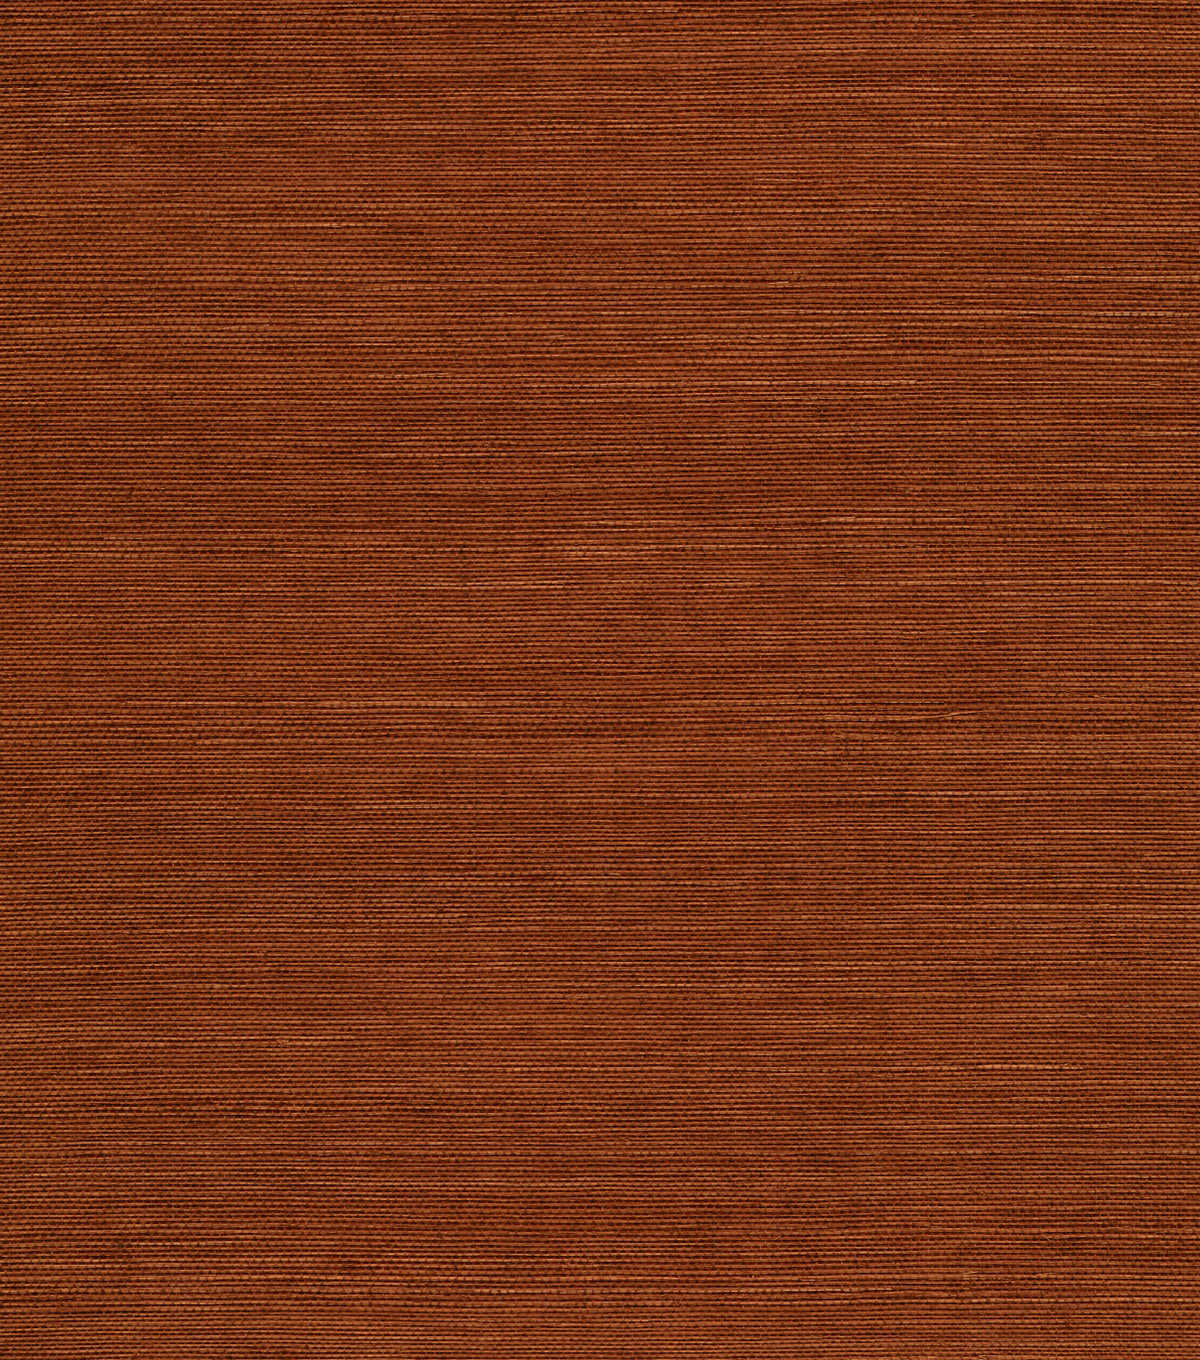 Daichi Brown Grasscloth Wallpaper